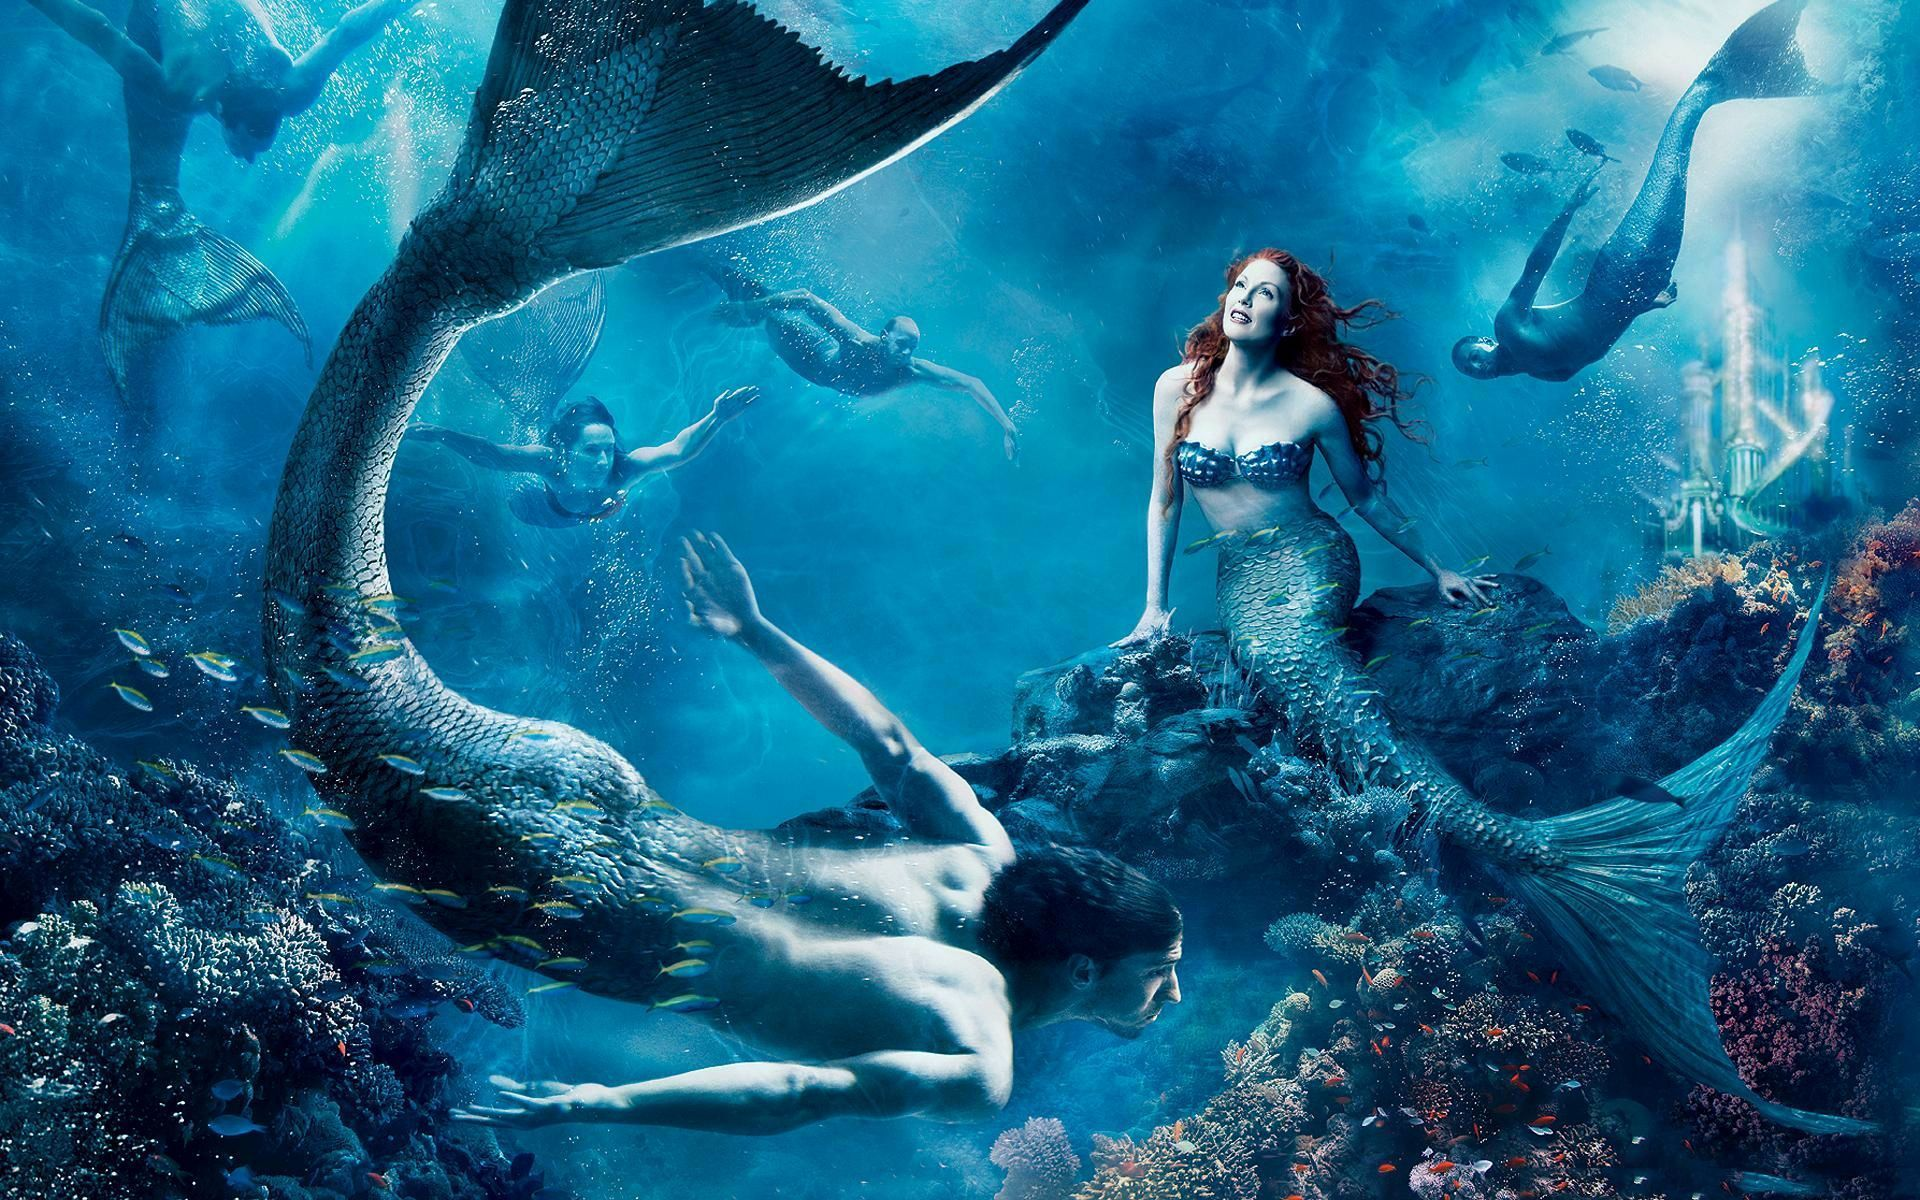 Fantasy - Mermaid  Fantasy Berühmtheiten Julianne Moore Blau Wallpaper